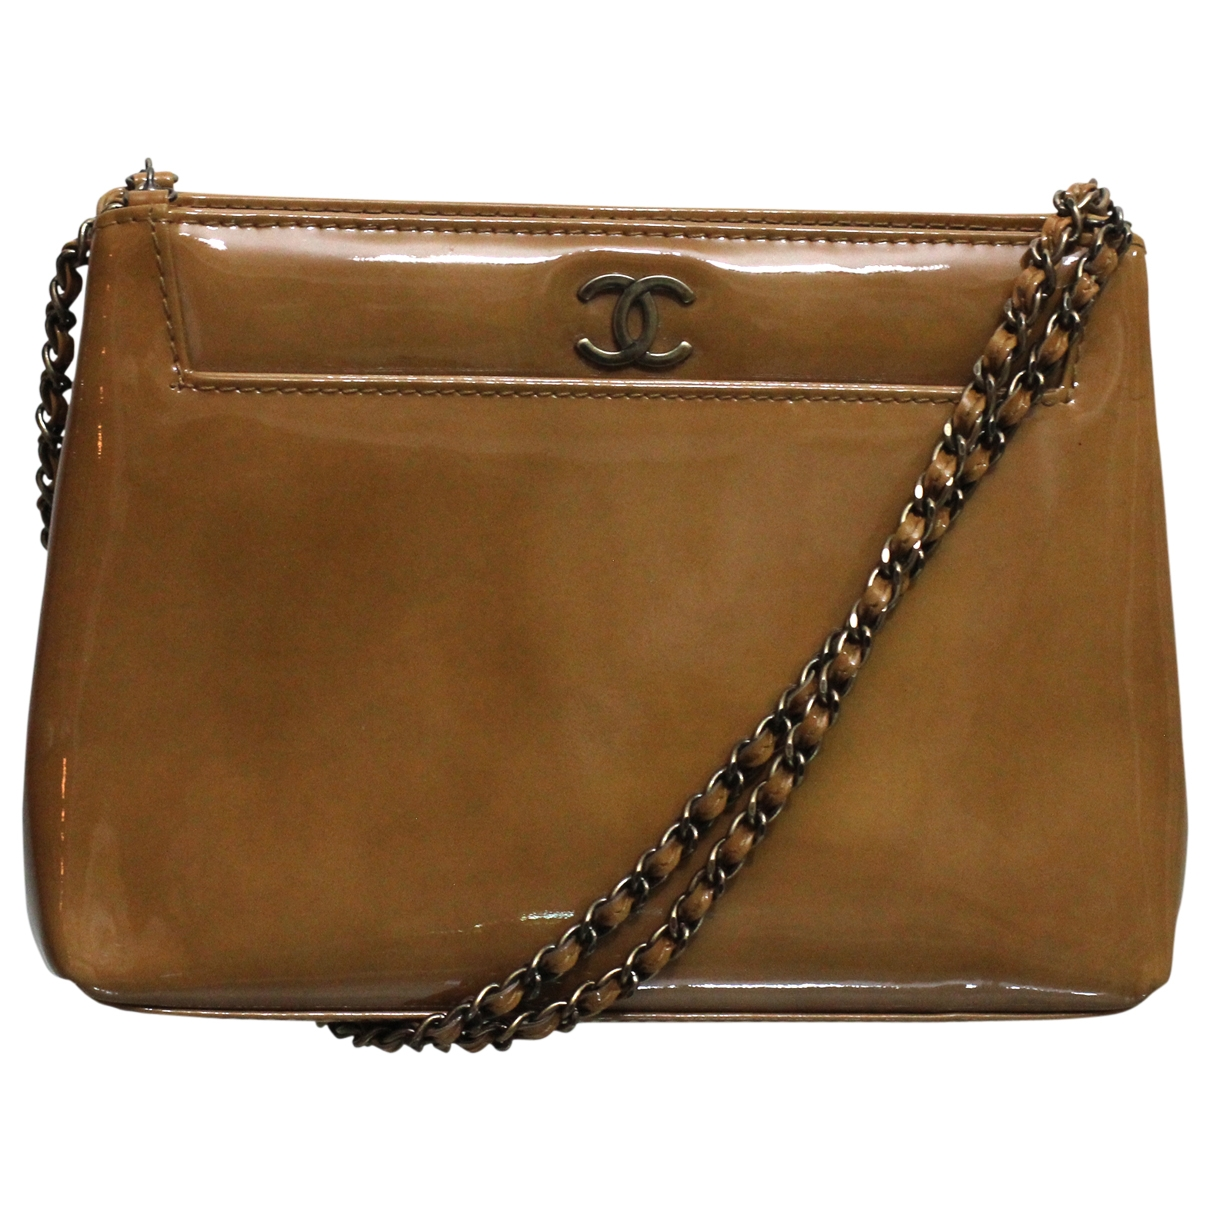 Chanel \N Beige Patent leather handbag for Women \N